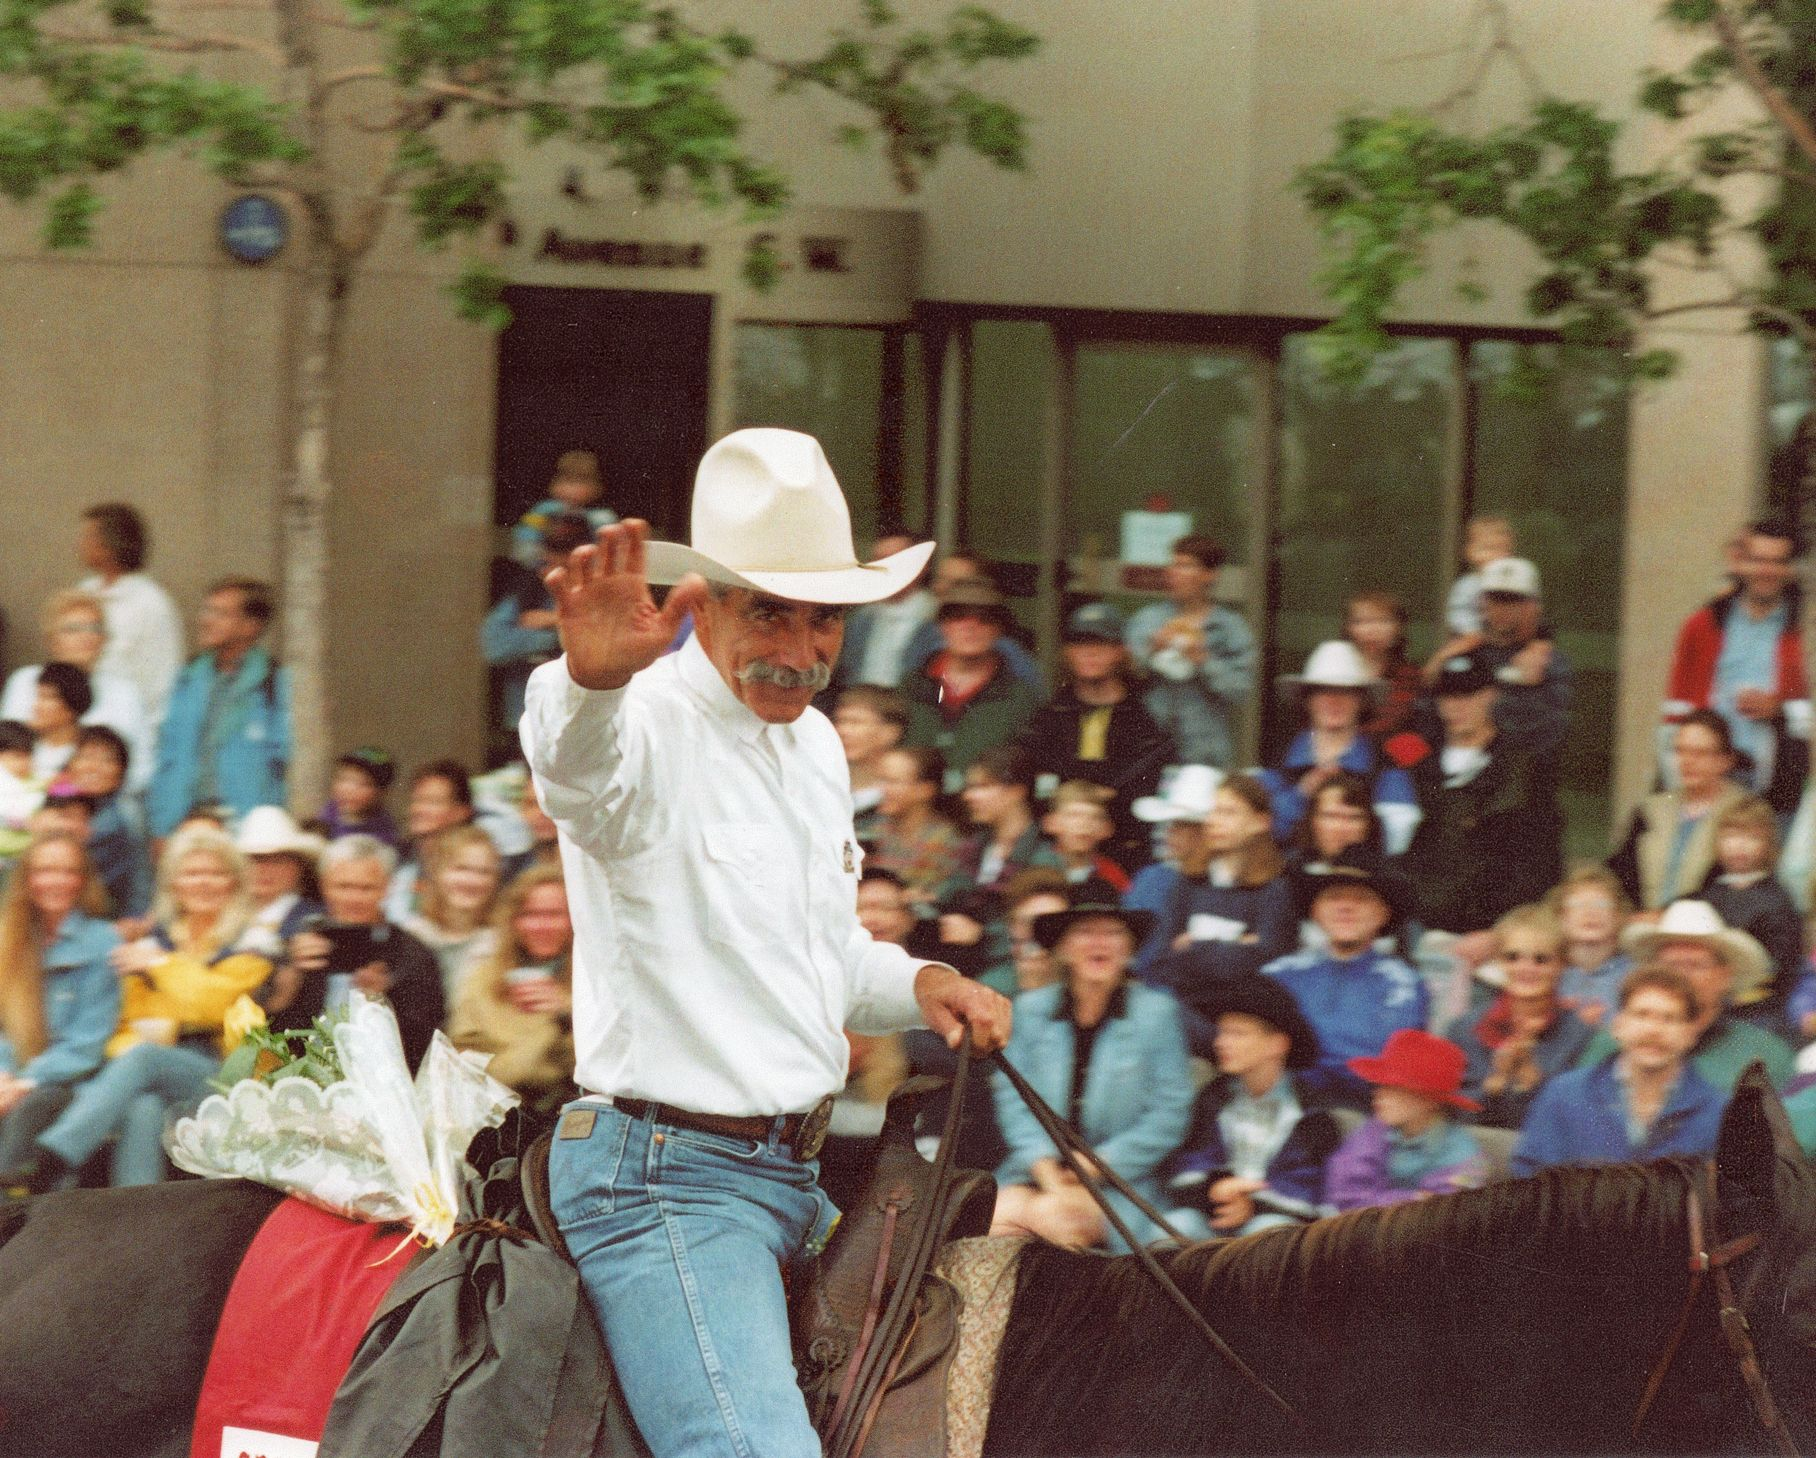 Actor Sam Elliot When He Served As Grand Marshall Of The